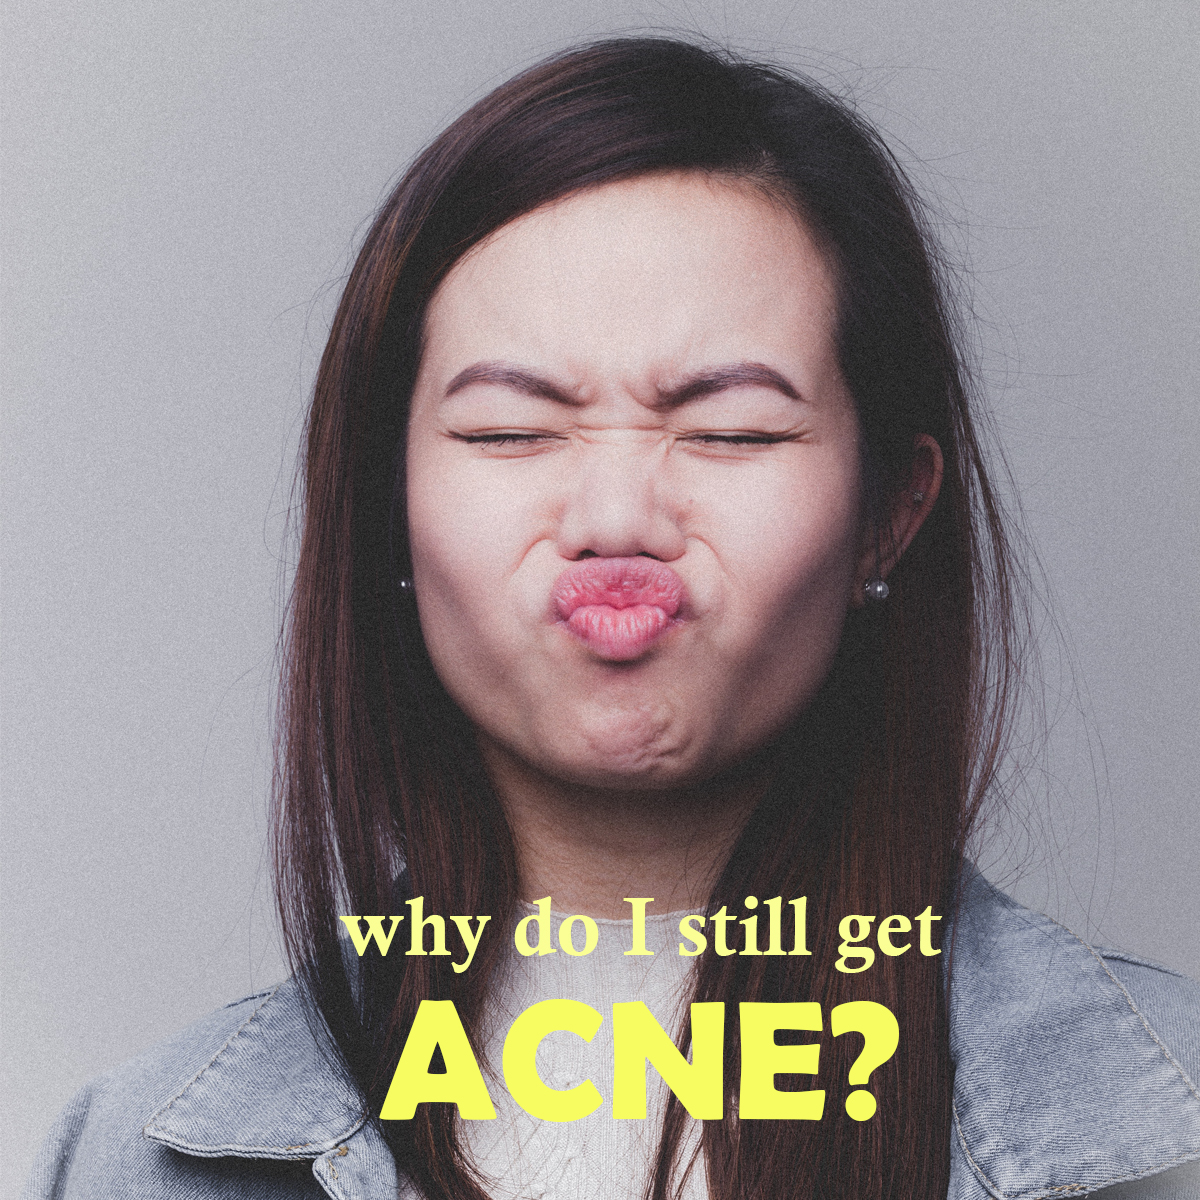 Why Do I Still Get Acne as an Adult?